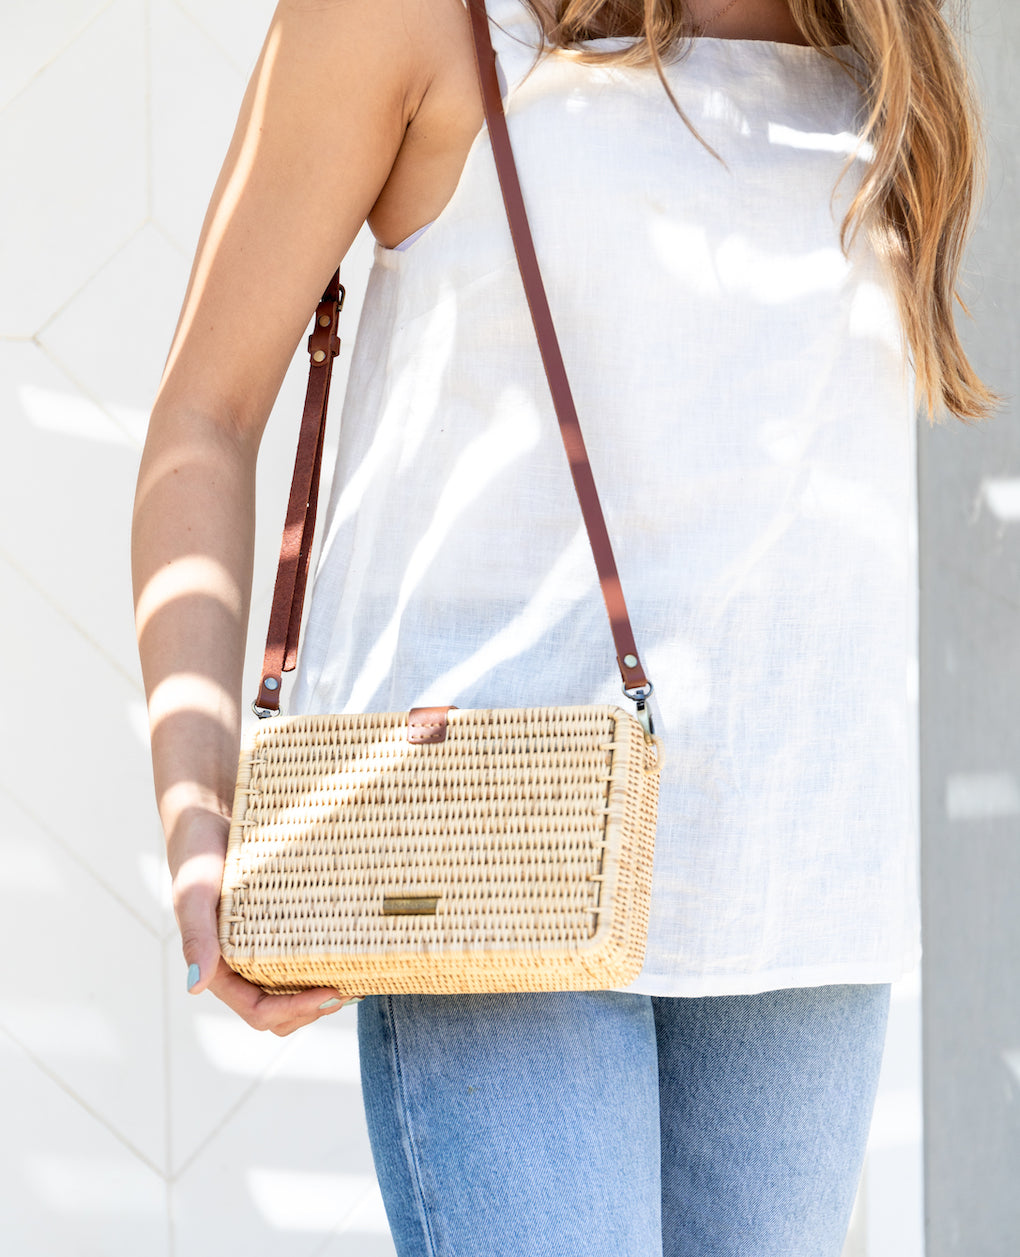 Rectangular Crossbody Natural Rattan Bag - Brown | The Little Market